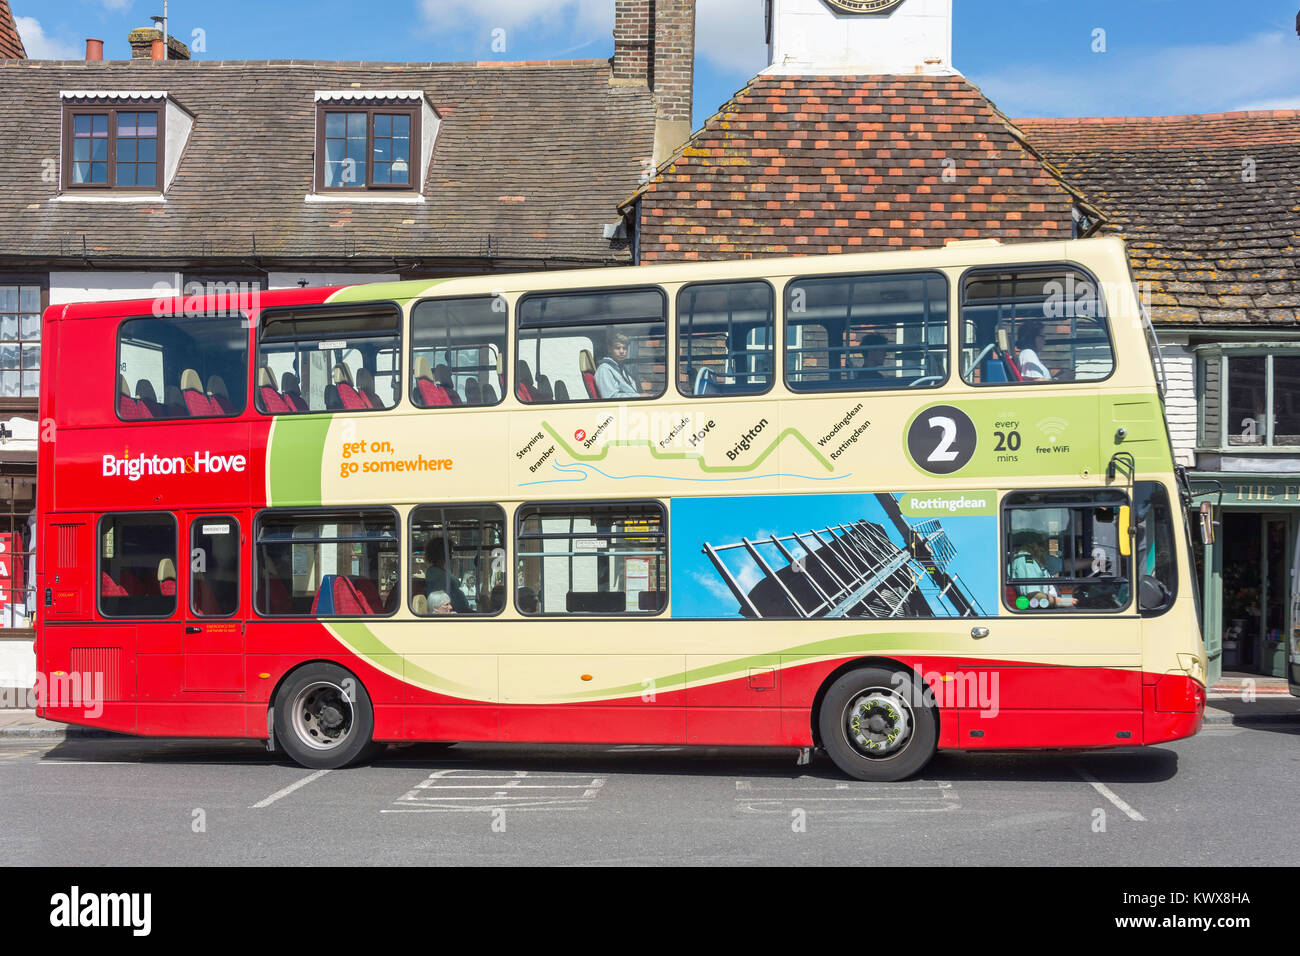 Local double-decker bus at bus stop, High Street, Steyning, West Sussex, England, United Kingdom - Stock Image